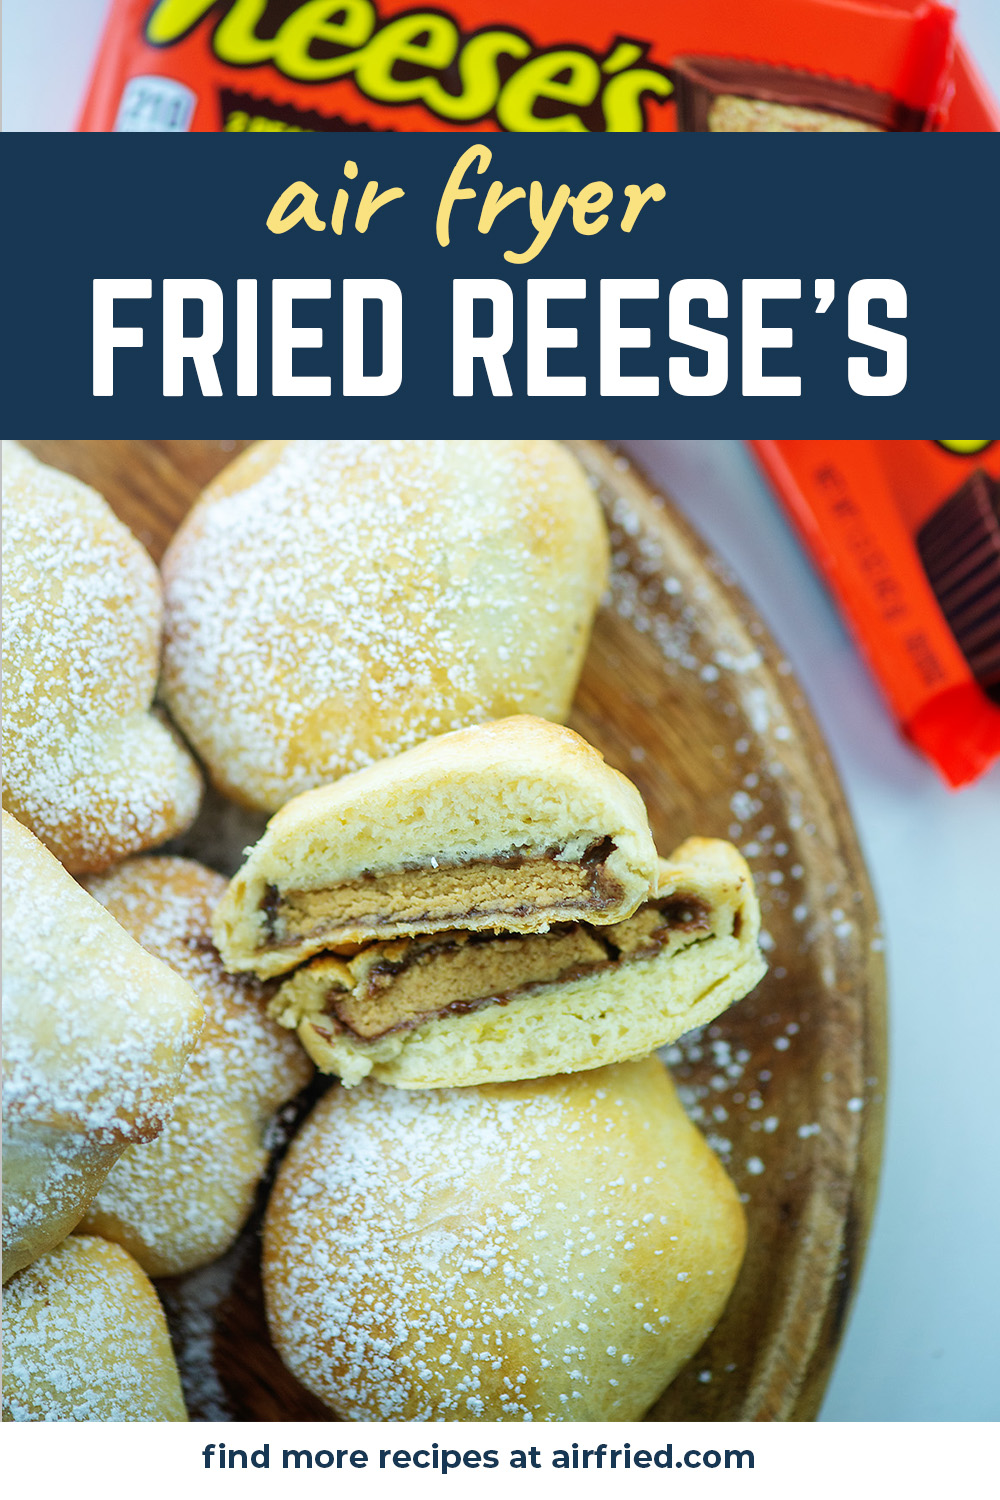 We covered peanut butter cups in a soft dough and fried them in the air fryer!  OMG these are AMAZING! #friedpeanutbutter #airfried #dessertrecipes